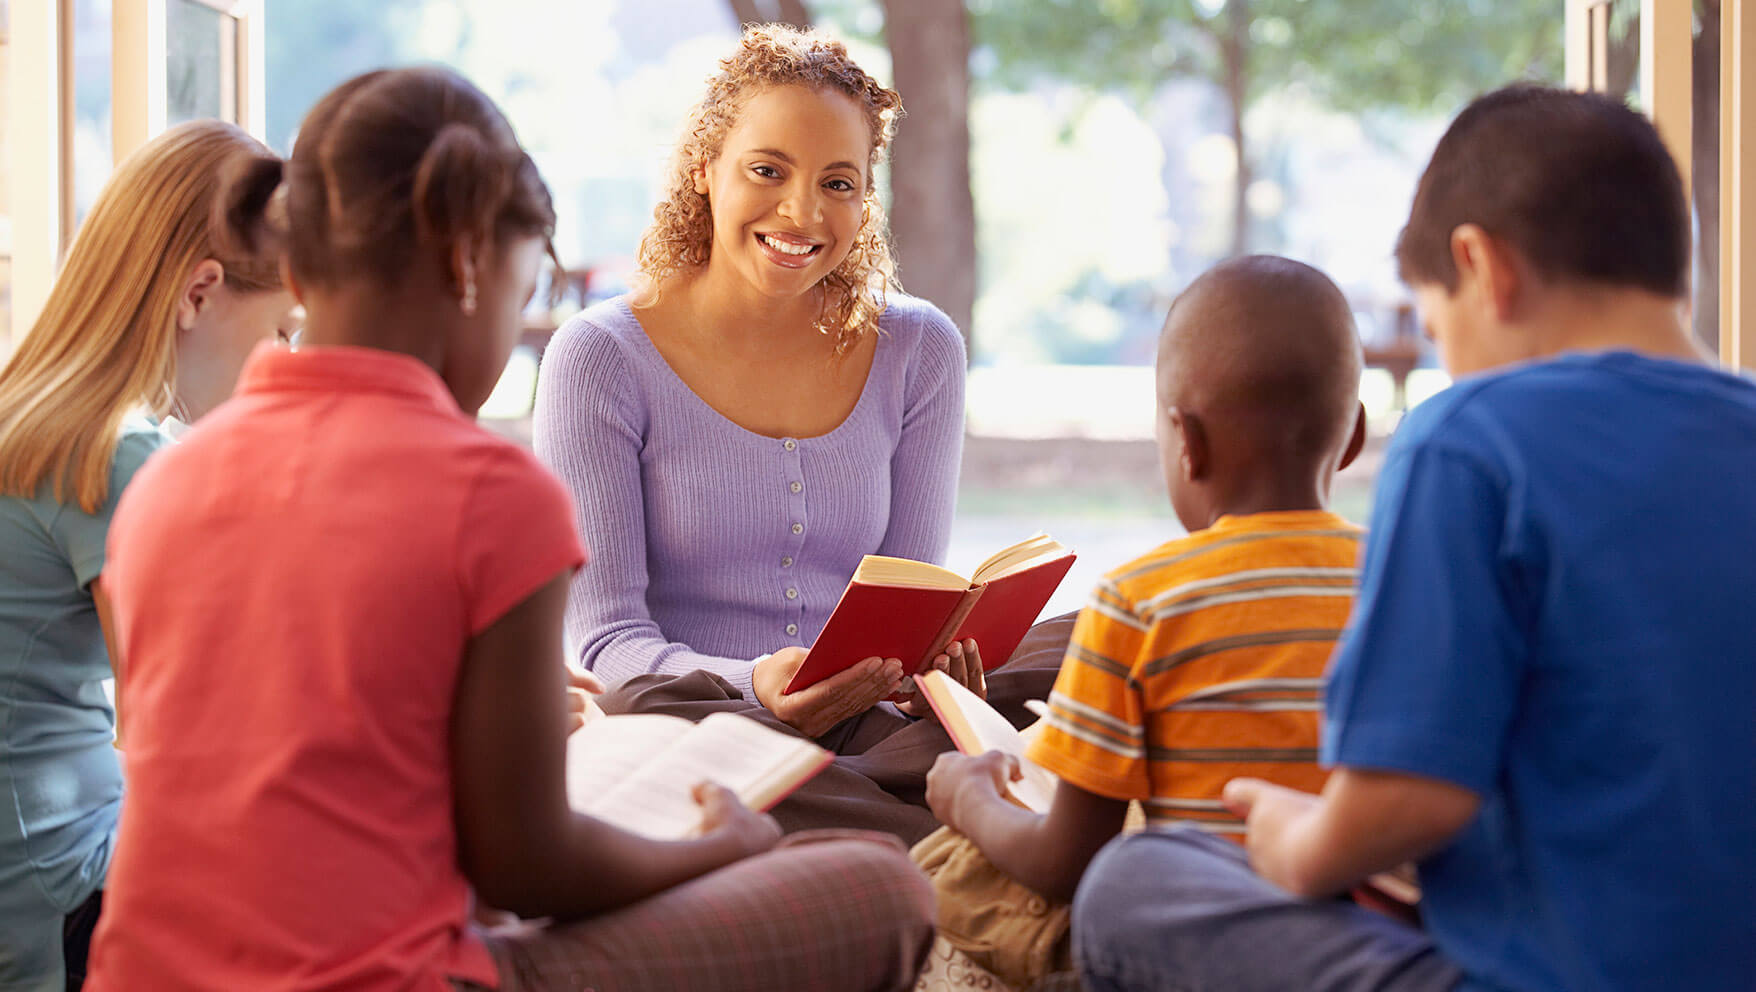 4 Ways to Engage Parents in Children's Ministry